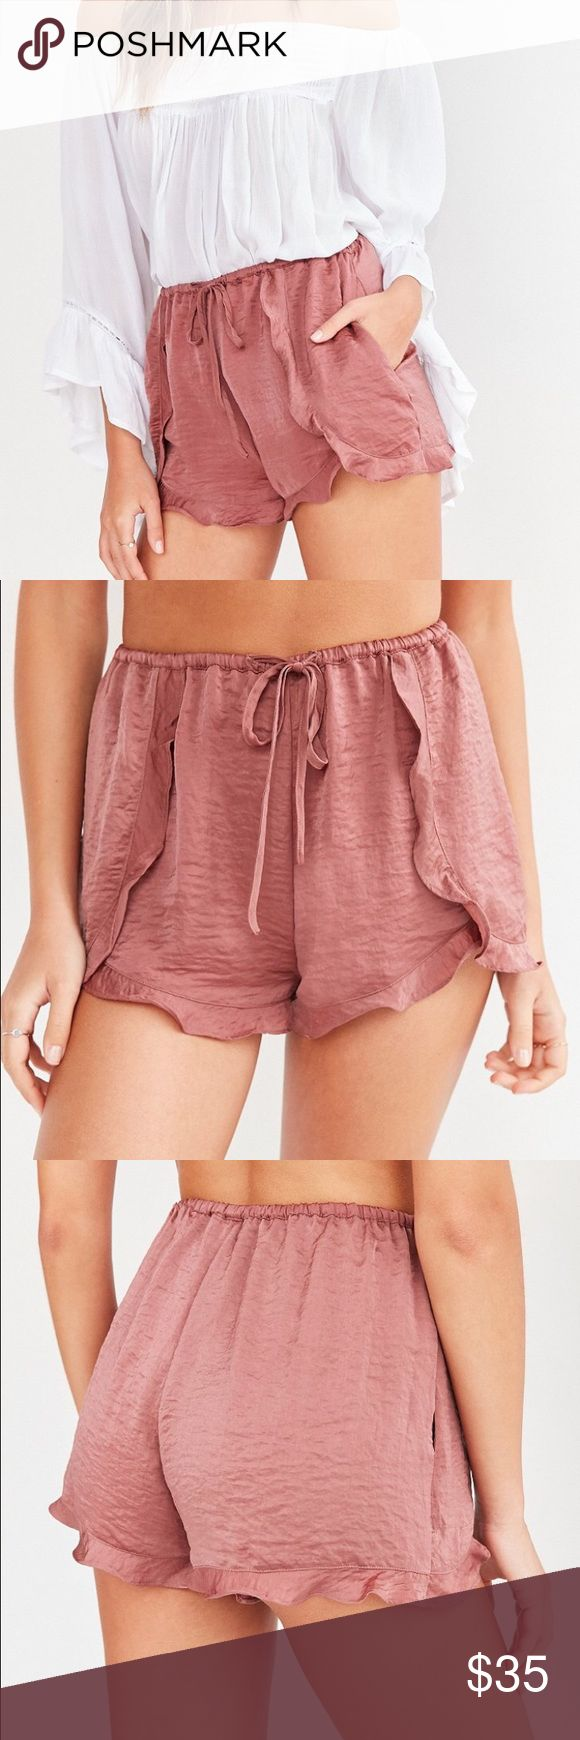 UO Crinkle Satin Ruffle Shorts (S) *NEW:NWT* Floaty, romantic ruffle-hem dolphin shorts in softly crinkled satin from UO's forever feminine label, ECOTE.   * Mid-rise  * Pull-on * Adjustable tie at waist * Side pockets * Polyester * Hand wash * Imported  Size:     SMALL Color:   MAUVE Retail:   $54.00  *** NEW WITH TAG *** Urban Outfitters Shorts